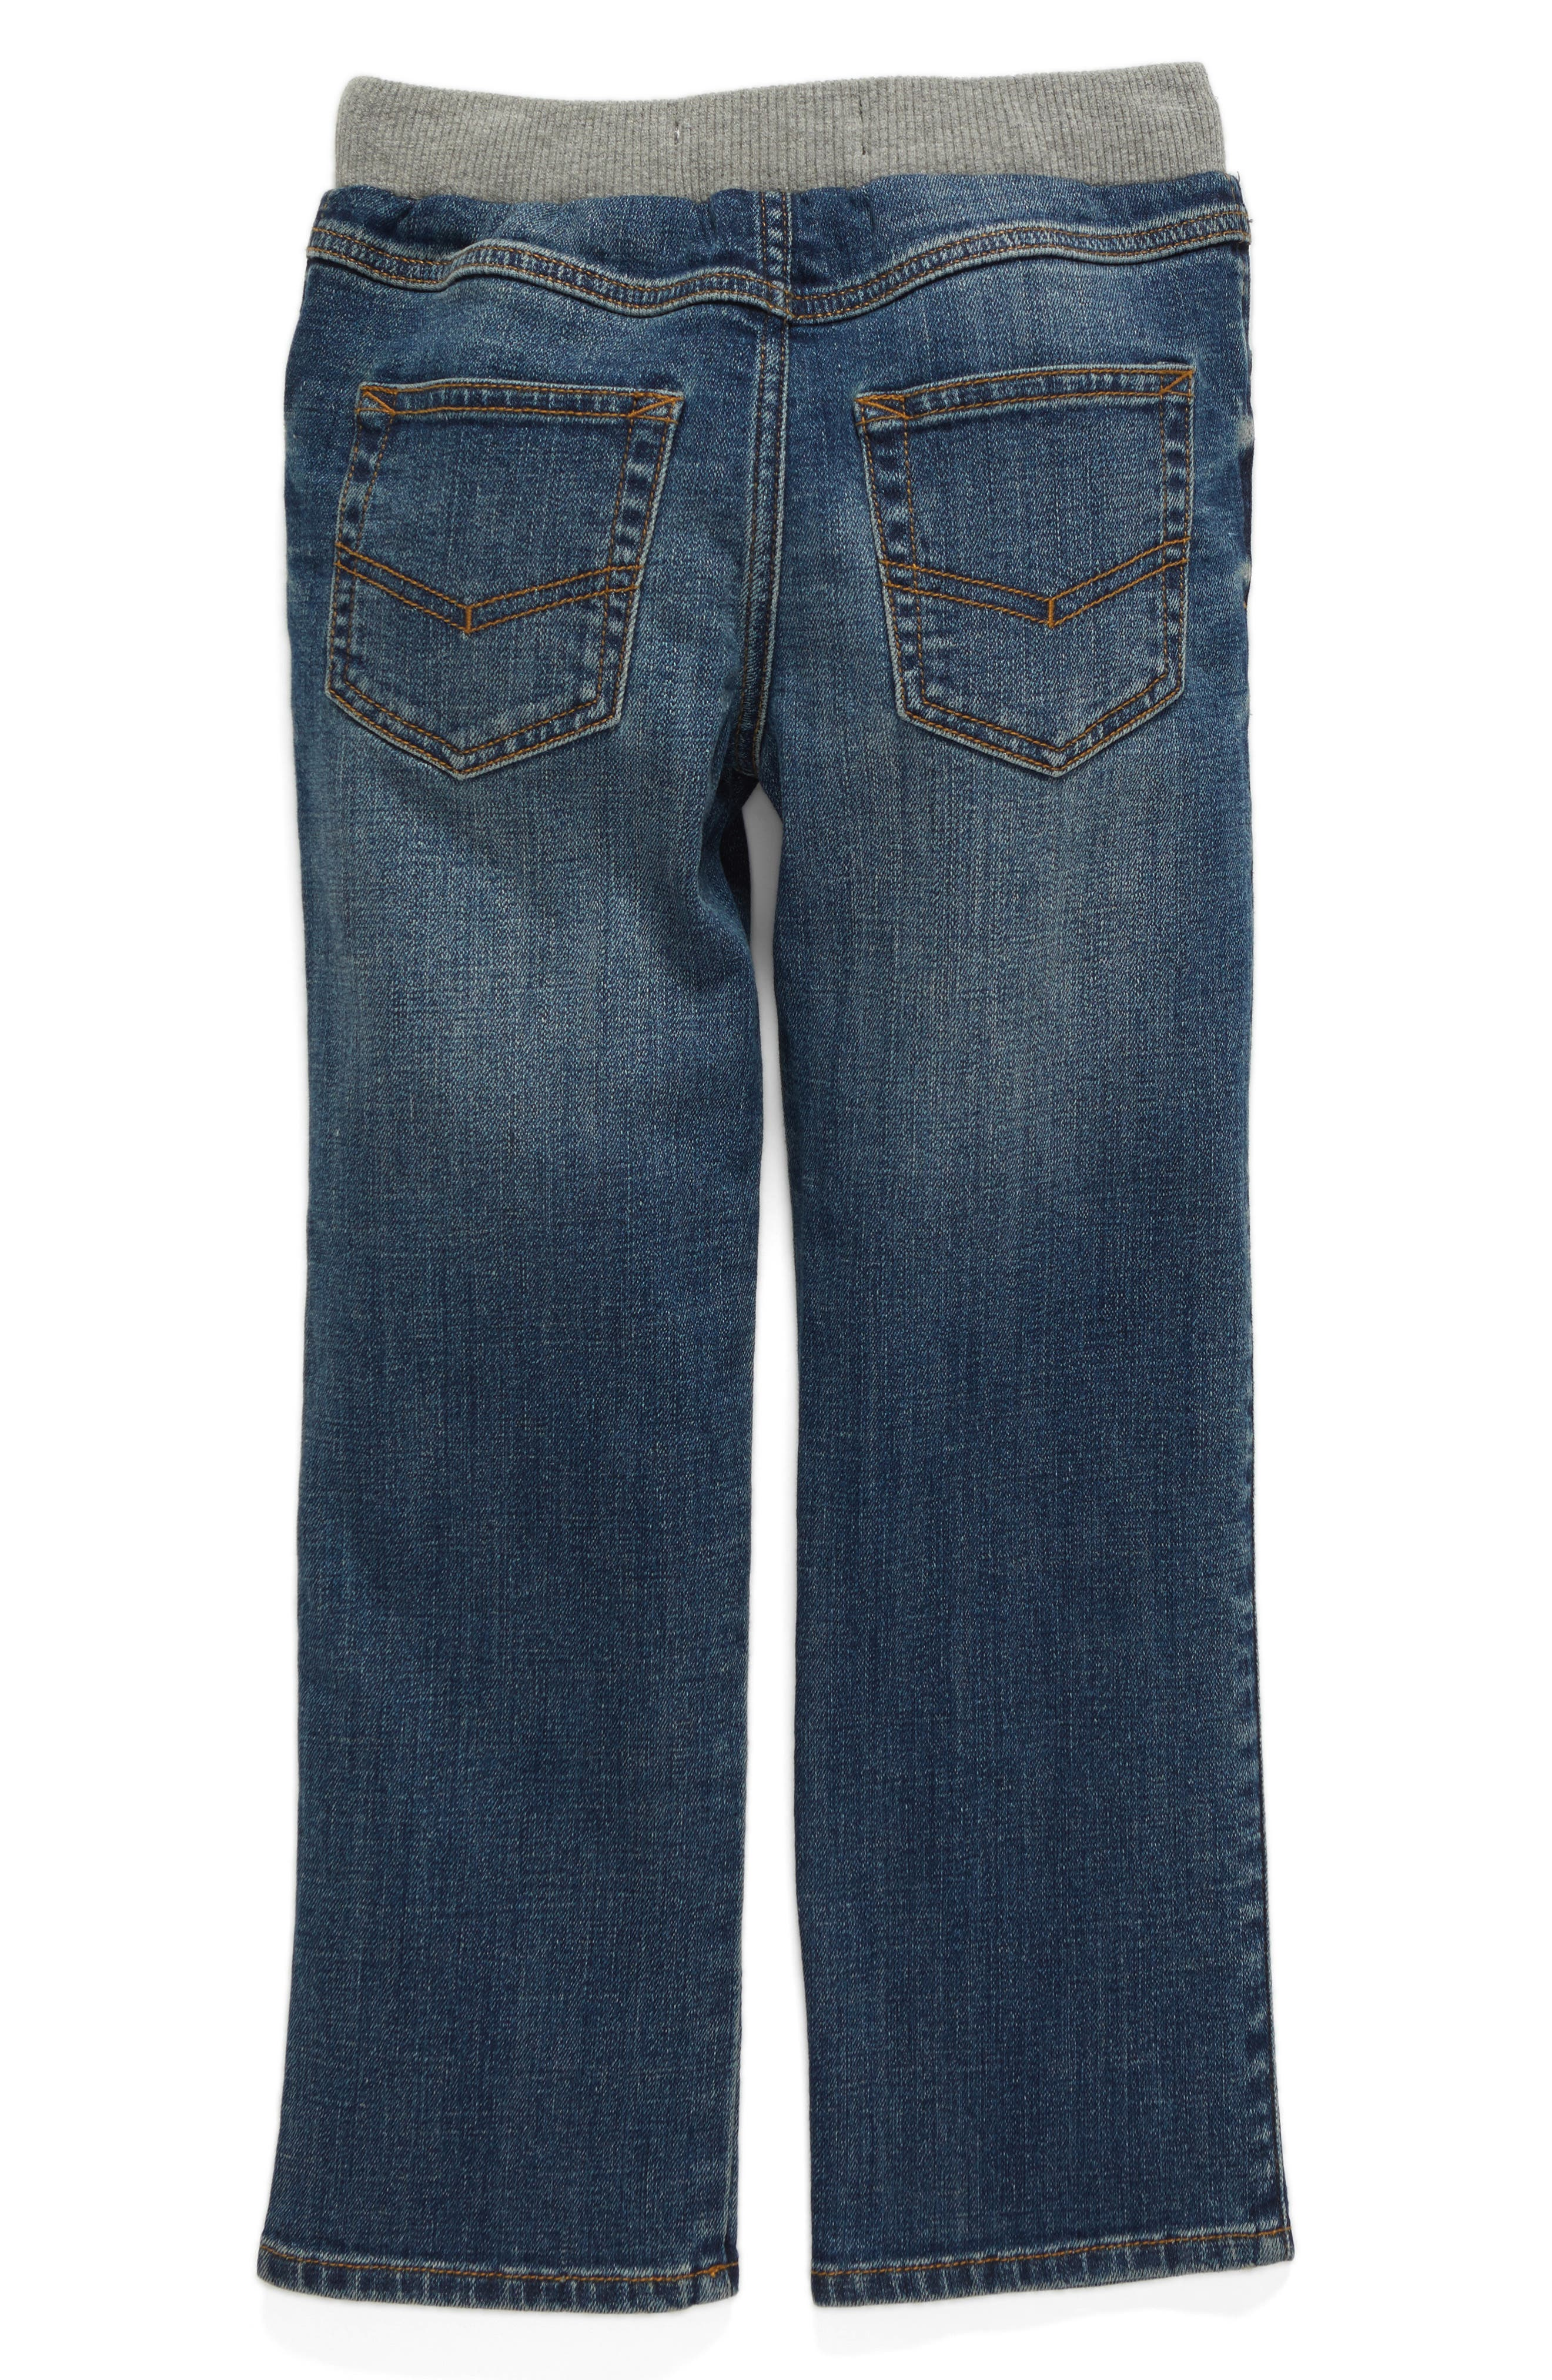 Straight Leg Jeans,                             Main thumbnail 1, color,                             401